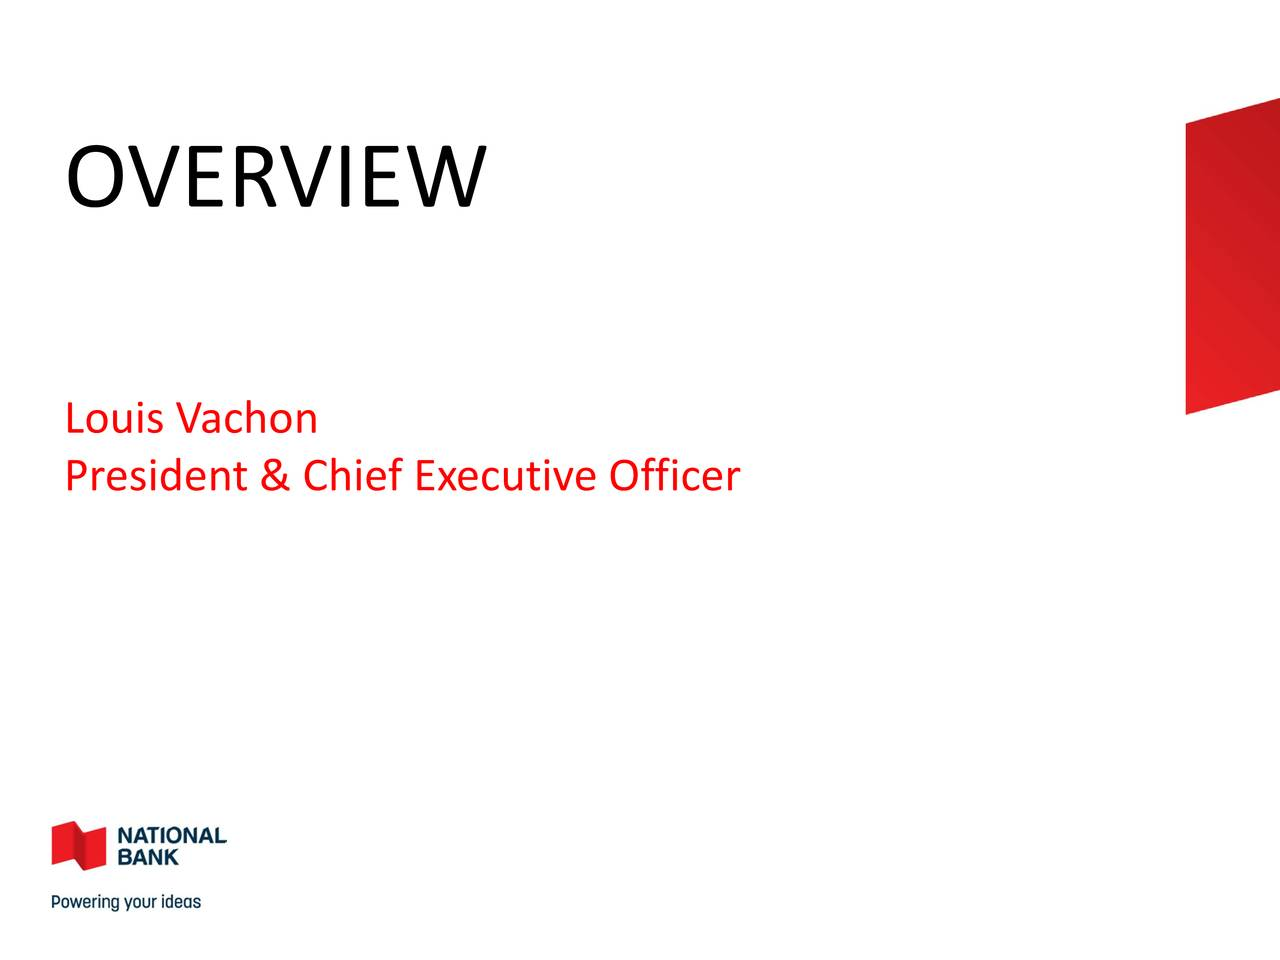 Louis Vachon President & Chief Executive Officer